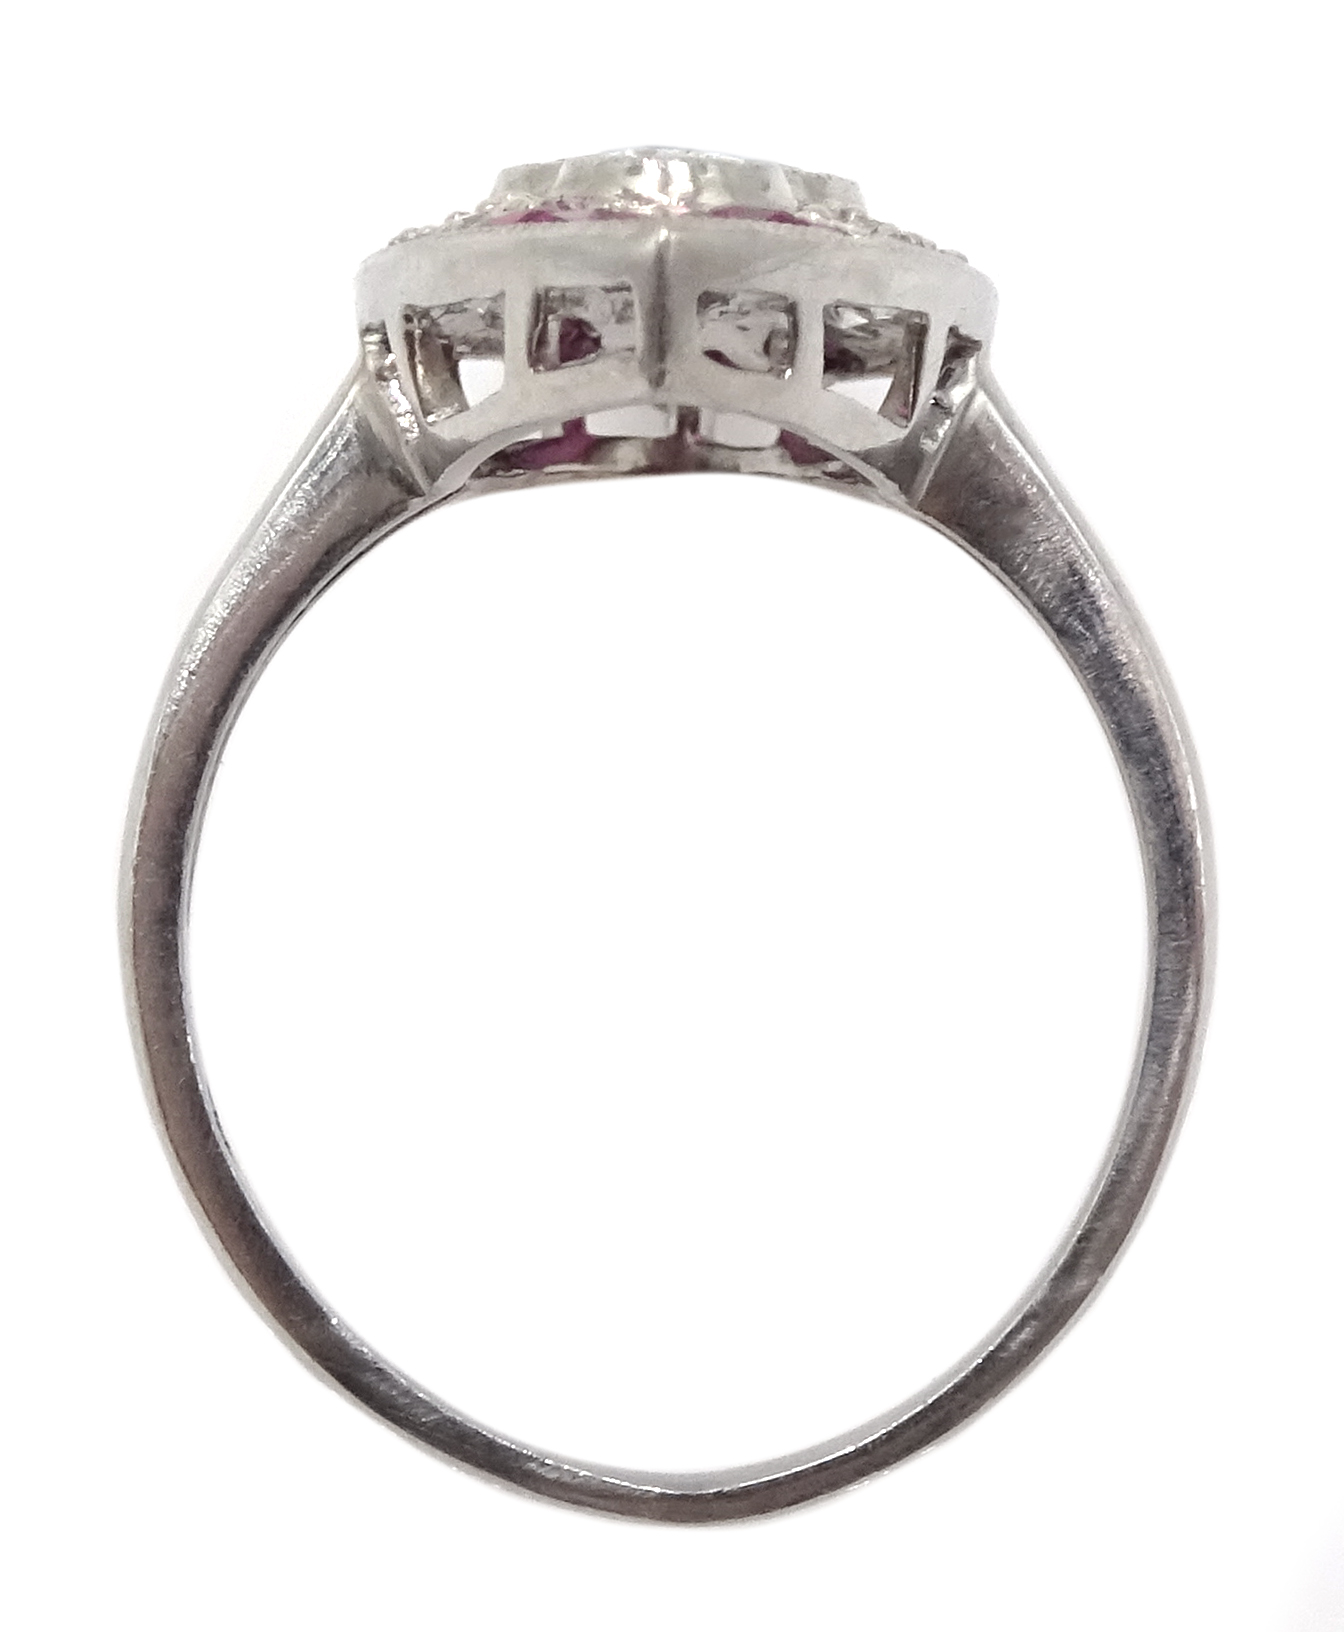 Victorian style marquise shaped platinum ring - Image 5 of 6